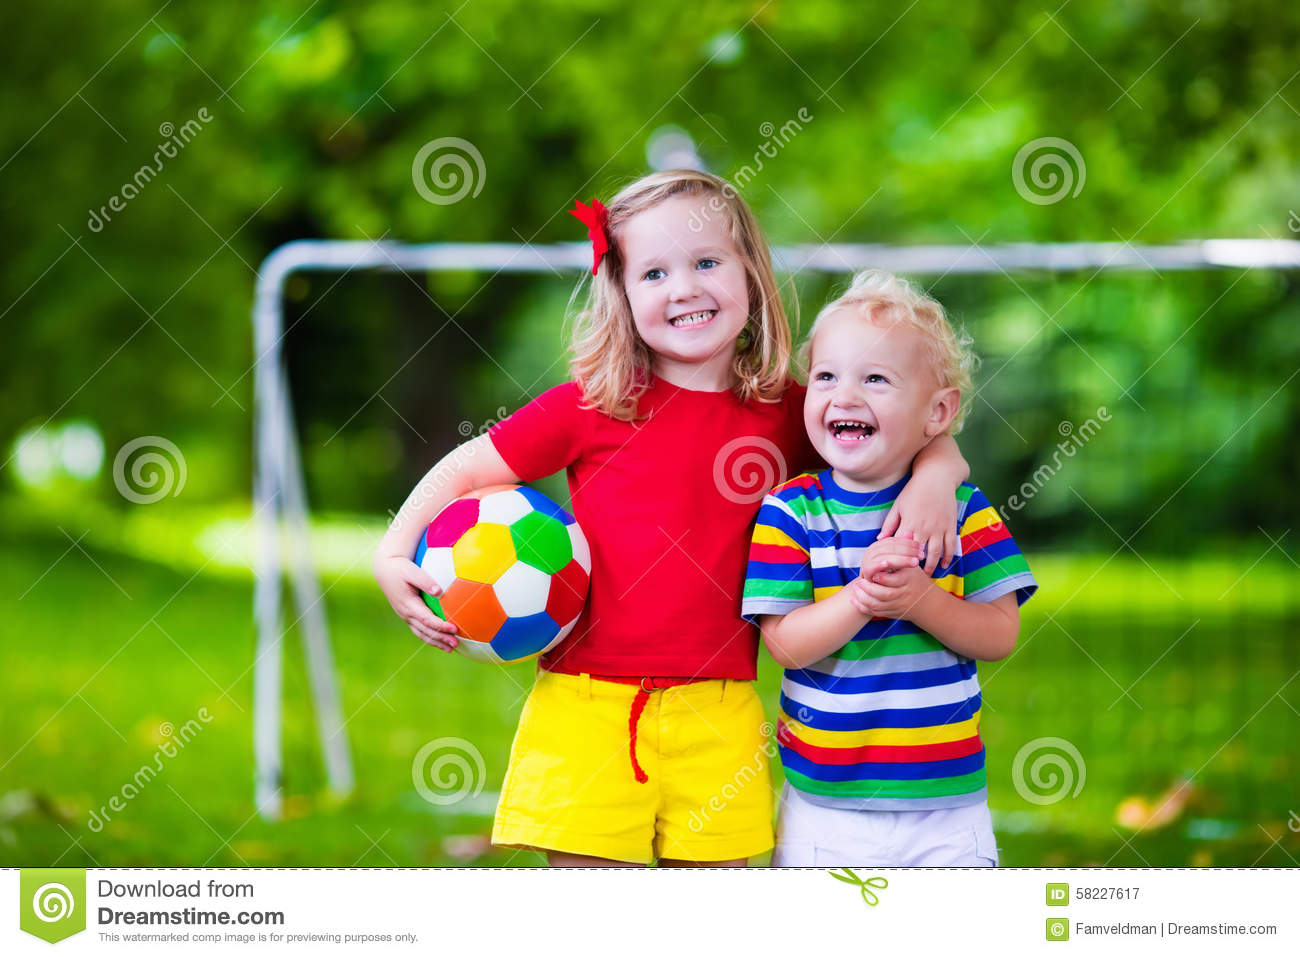 Kinder Garden: Kids Playing Football In A Park Stock Image